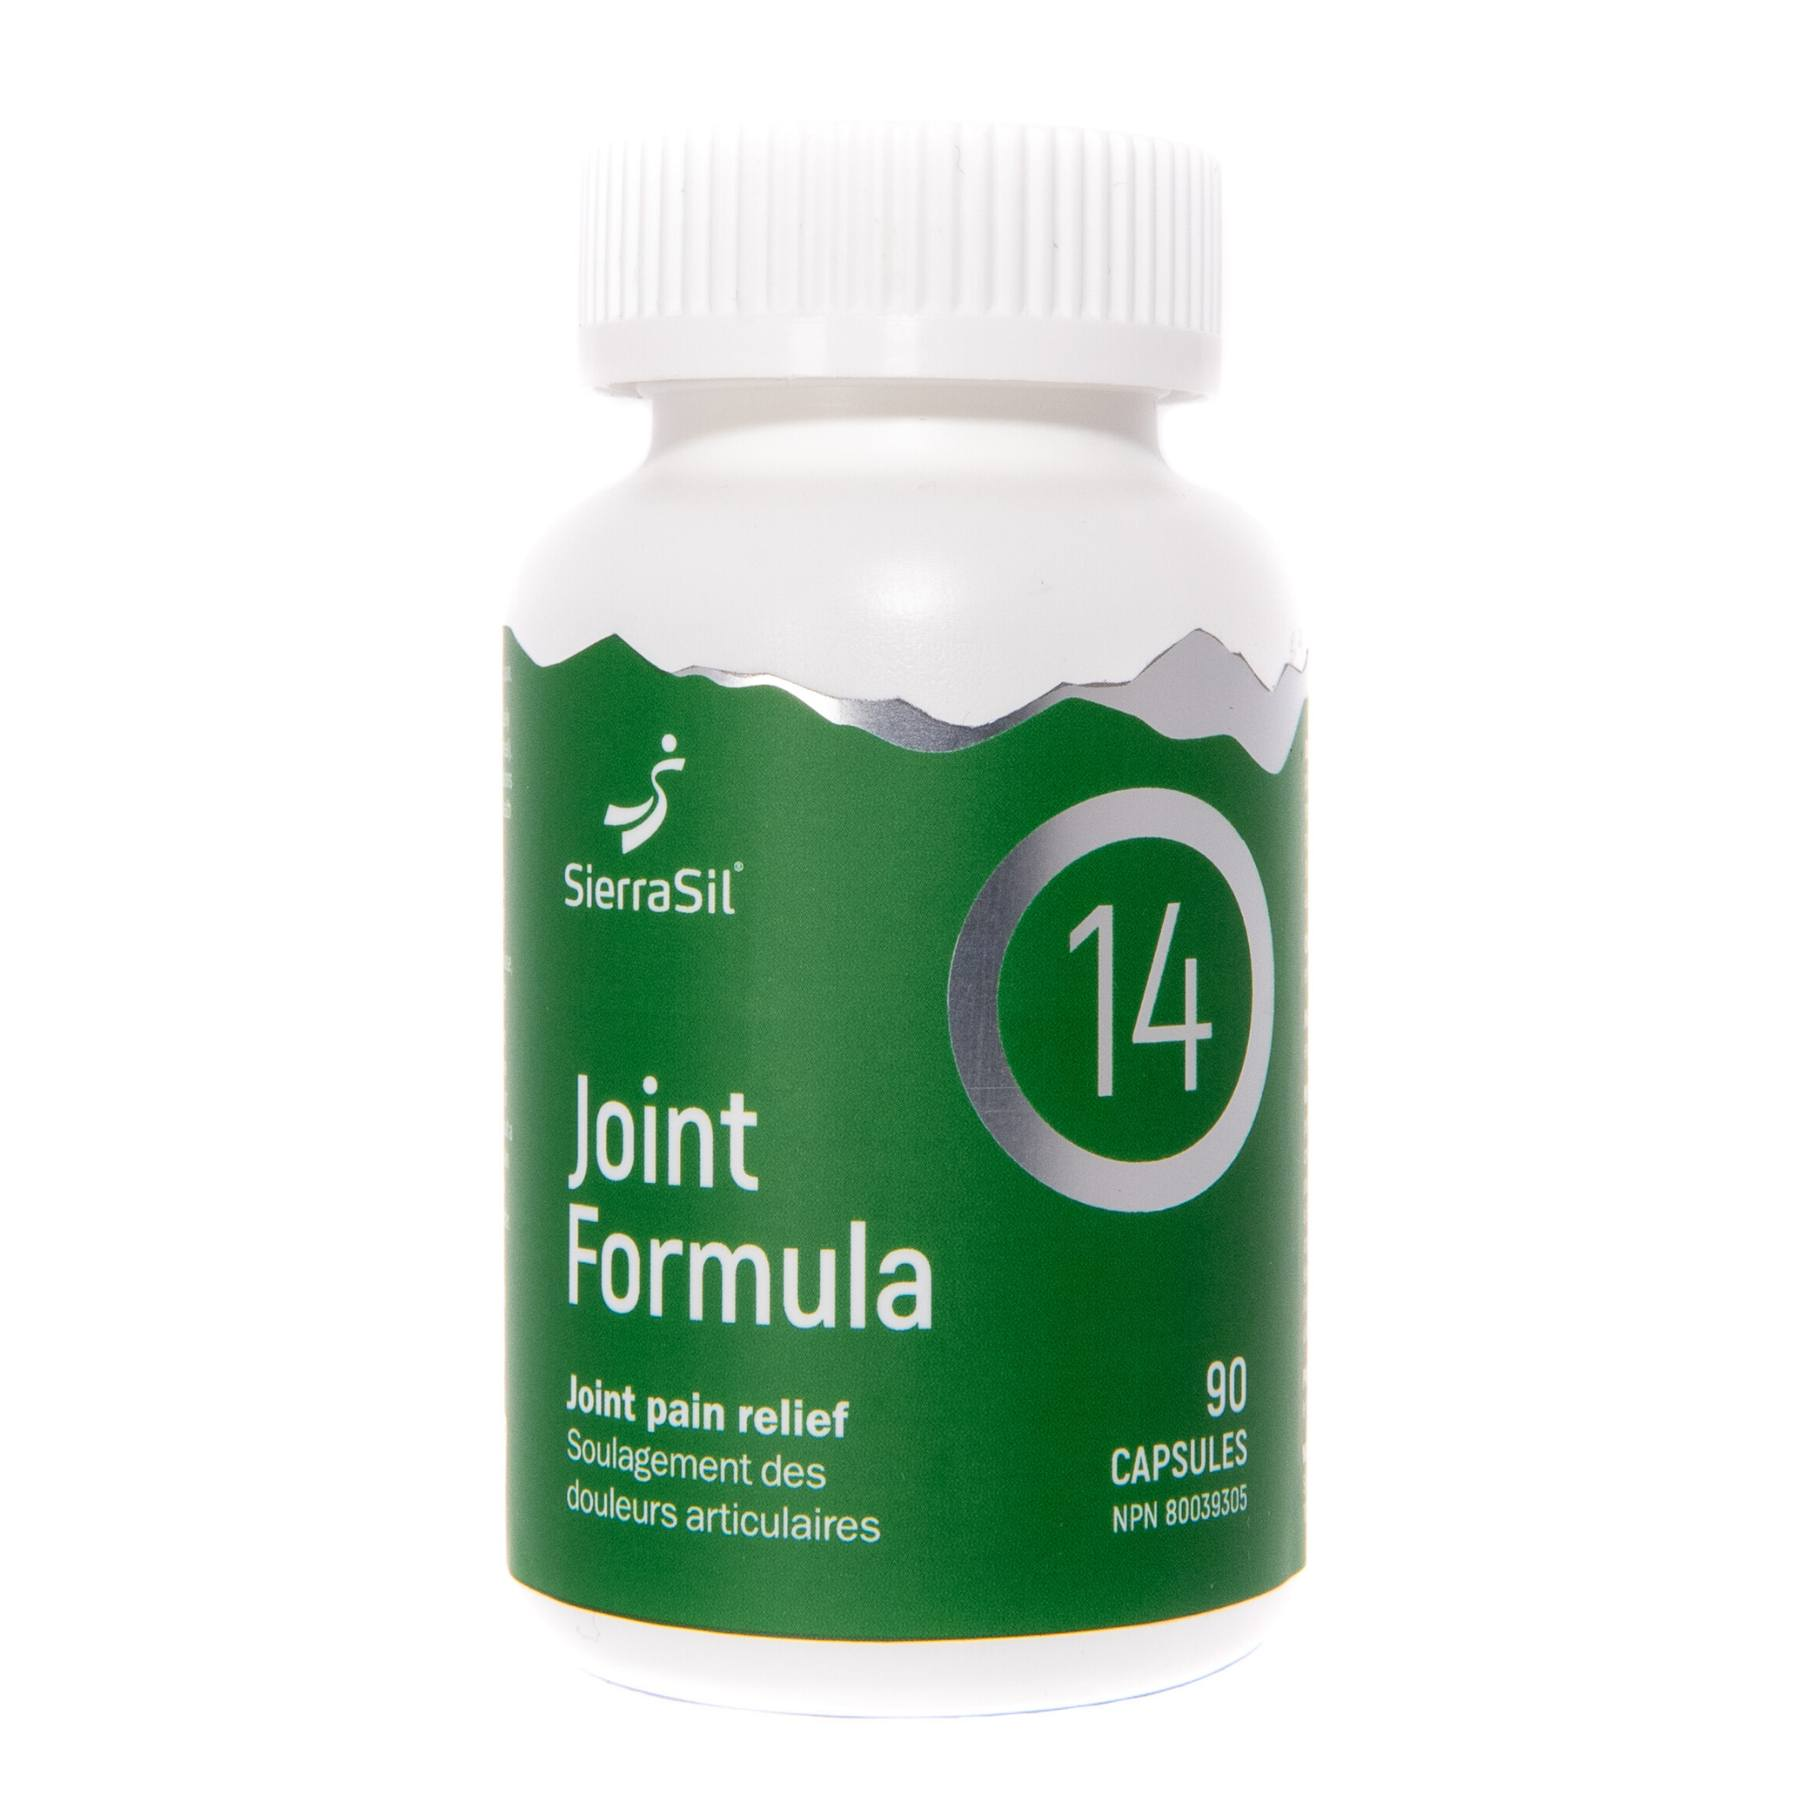 Supplements & Vitamins - SierraSil - Joint Formula 14, 51 Caps